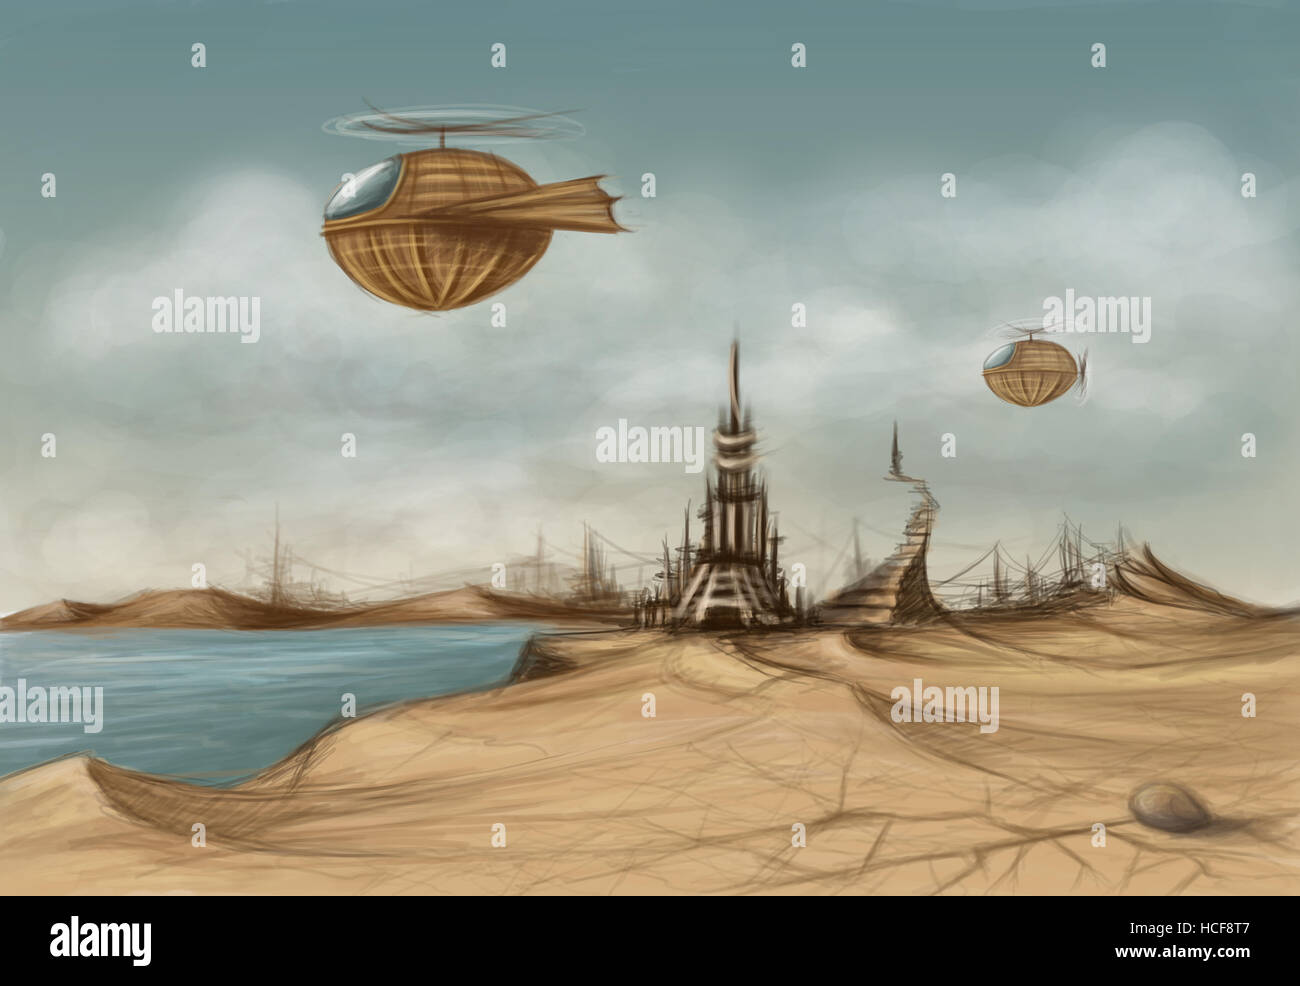 fantasy landscape with a decaying tower and dirigibles in the sky - Stock Image